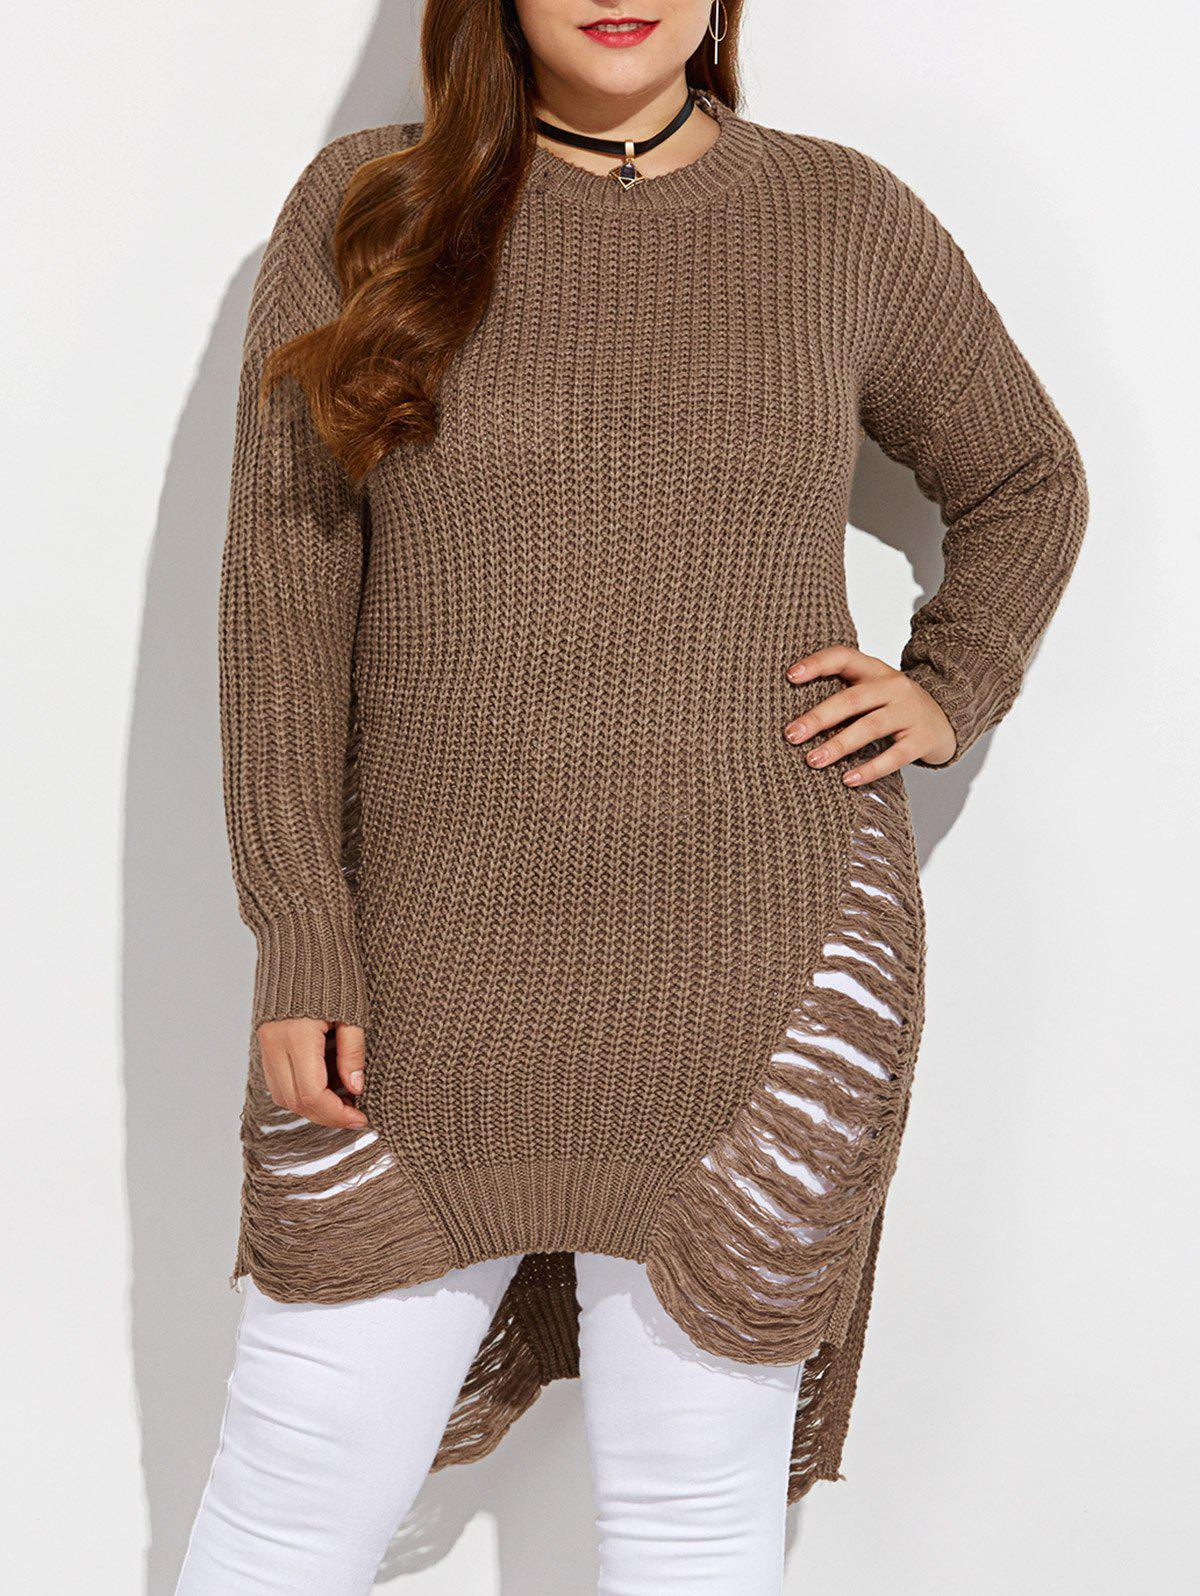 High Low Ripped Plus Size Crew Neck SweaterWOMEN<br><br>Size: XL; Color: LIGHT COFFEE; Type: Pullovers; Material: Polyester; Sleeve Length: Full; Collar: Round Neck; Style: Casual; Pattern Type: Solid; Season: Fall,Spring,Winter; Weight: 0.450kg; Package Contents: 1 x Sweater;